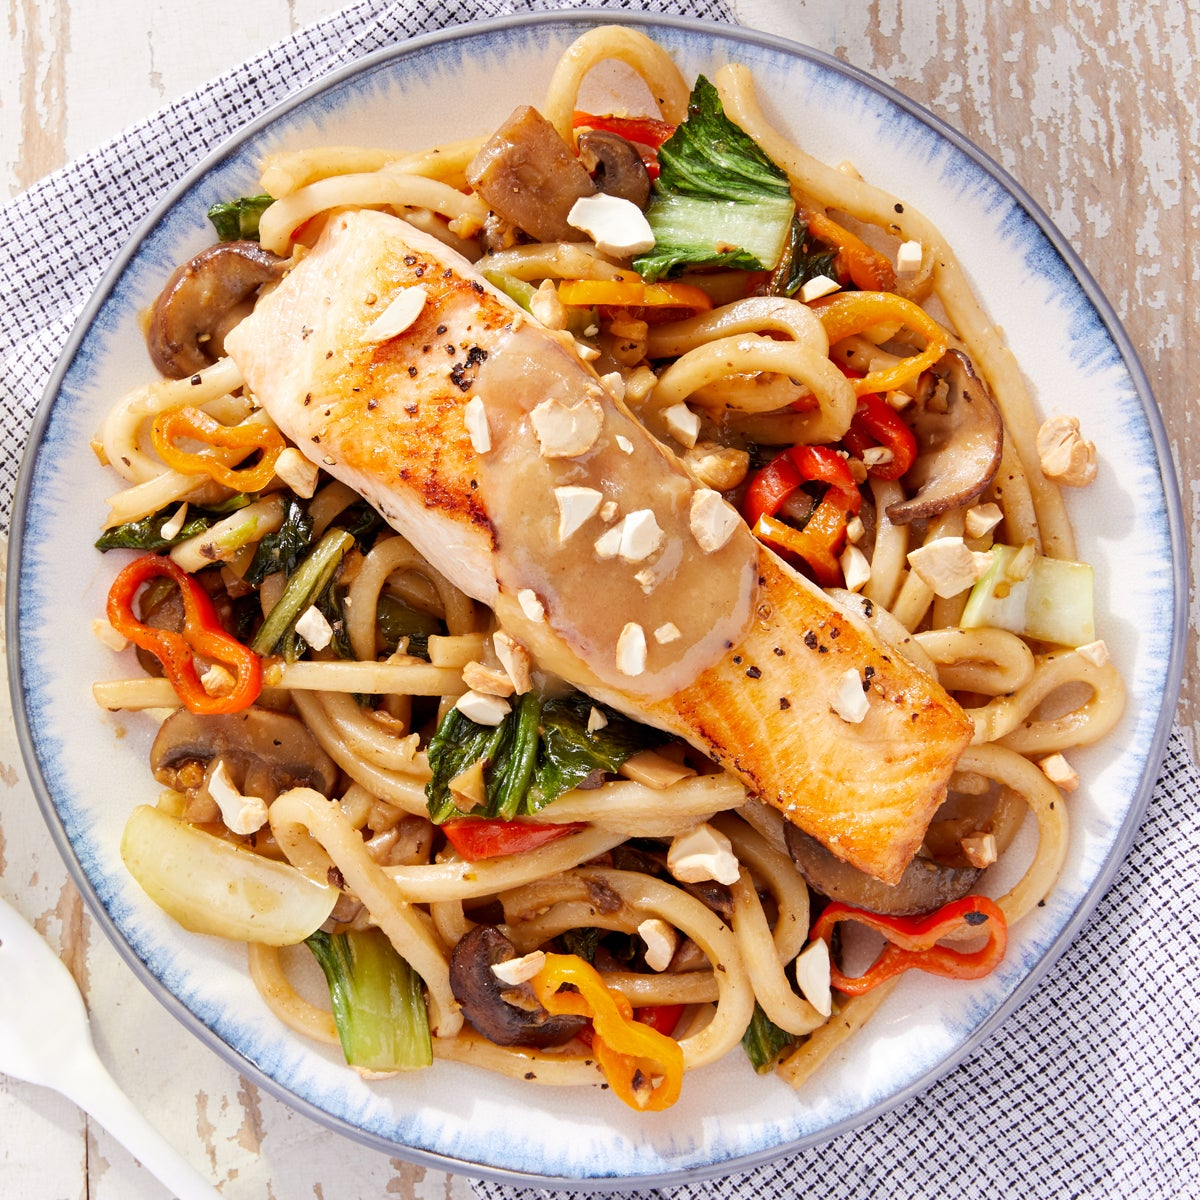 Miso-Honey Salmon with Vegetable & Udon Stir-Fry